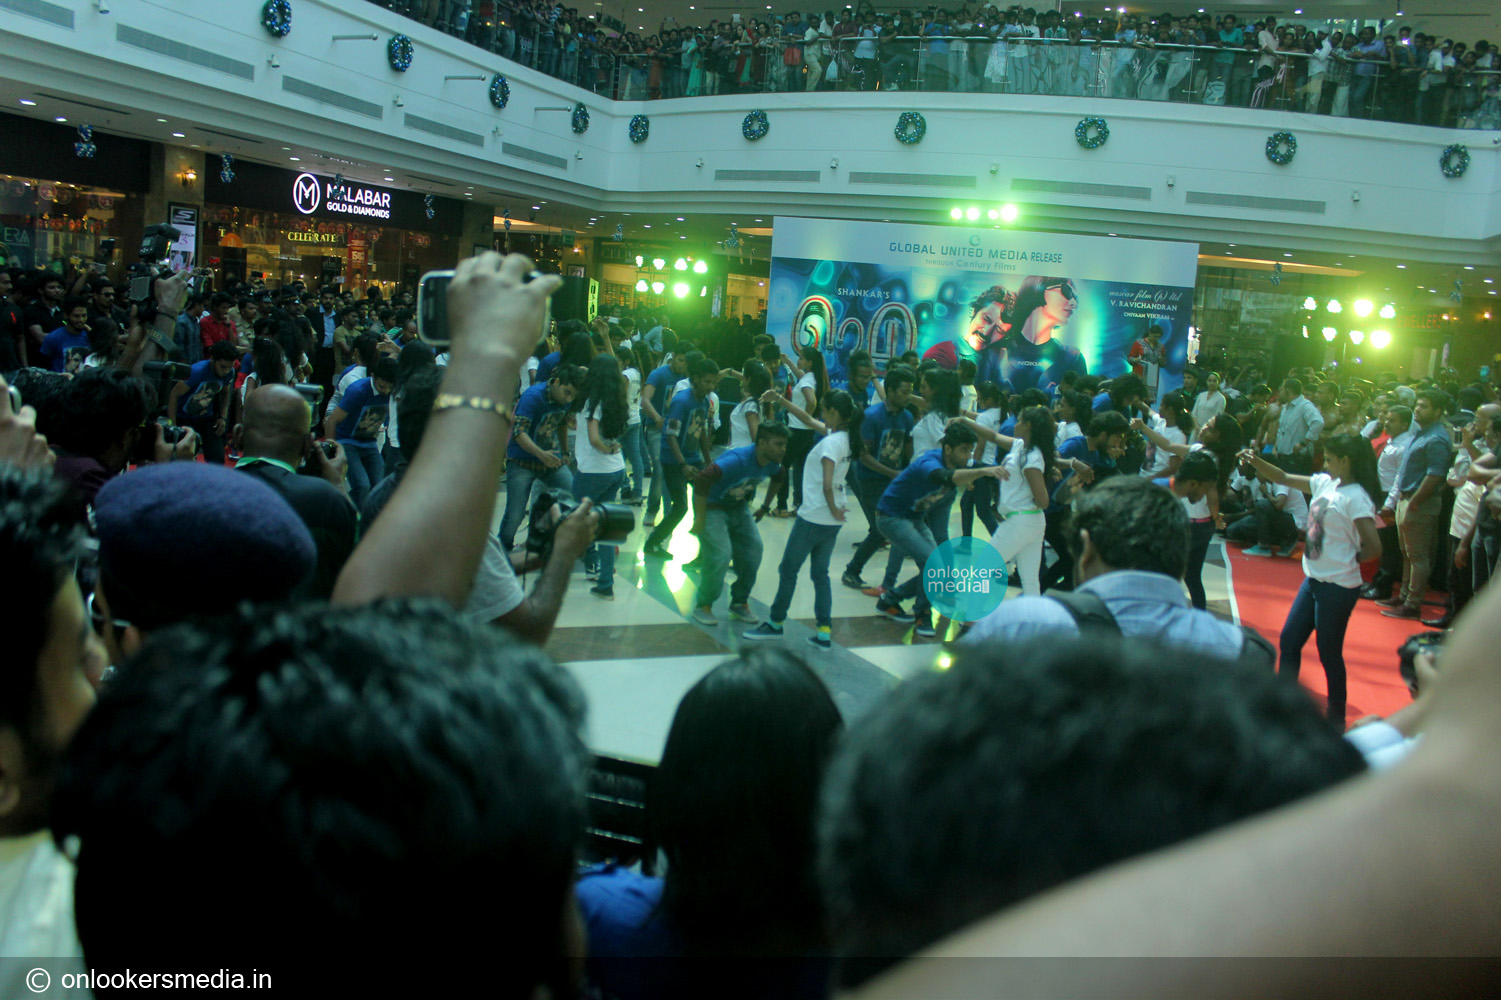 http://onlookersmedia.in/wp-content/uploads/2015/01/I-promotional-function-at-Lulu-mall-Kerala-Vikram-Amy-Jackson-Onlookers-Media-31.jpg